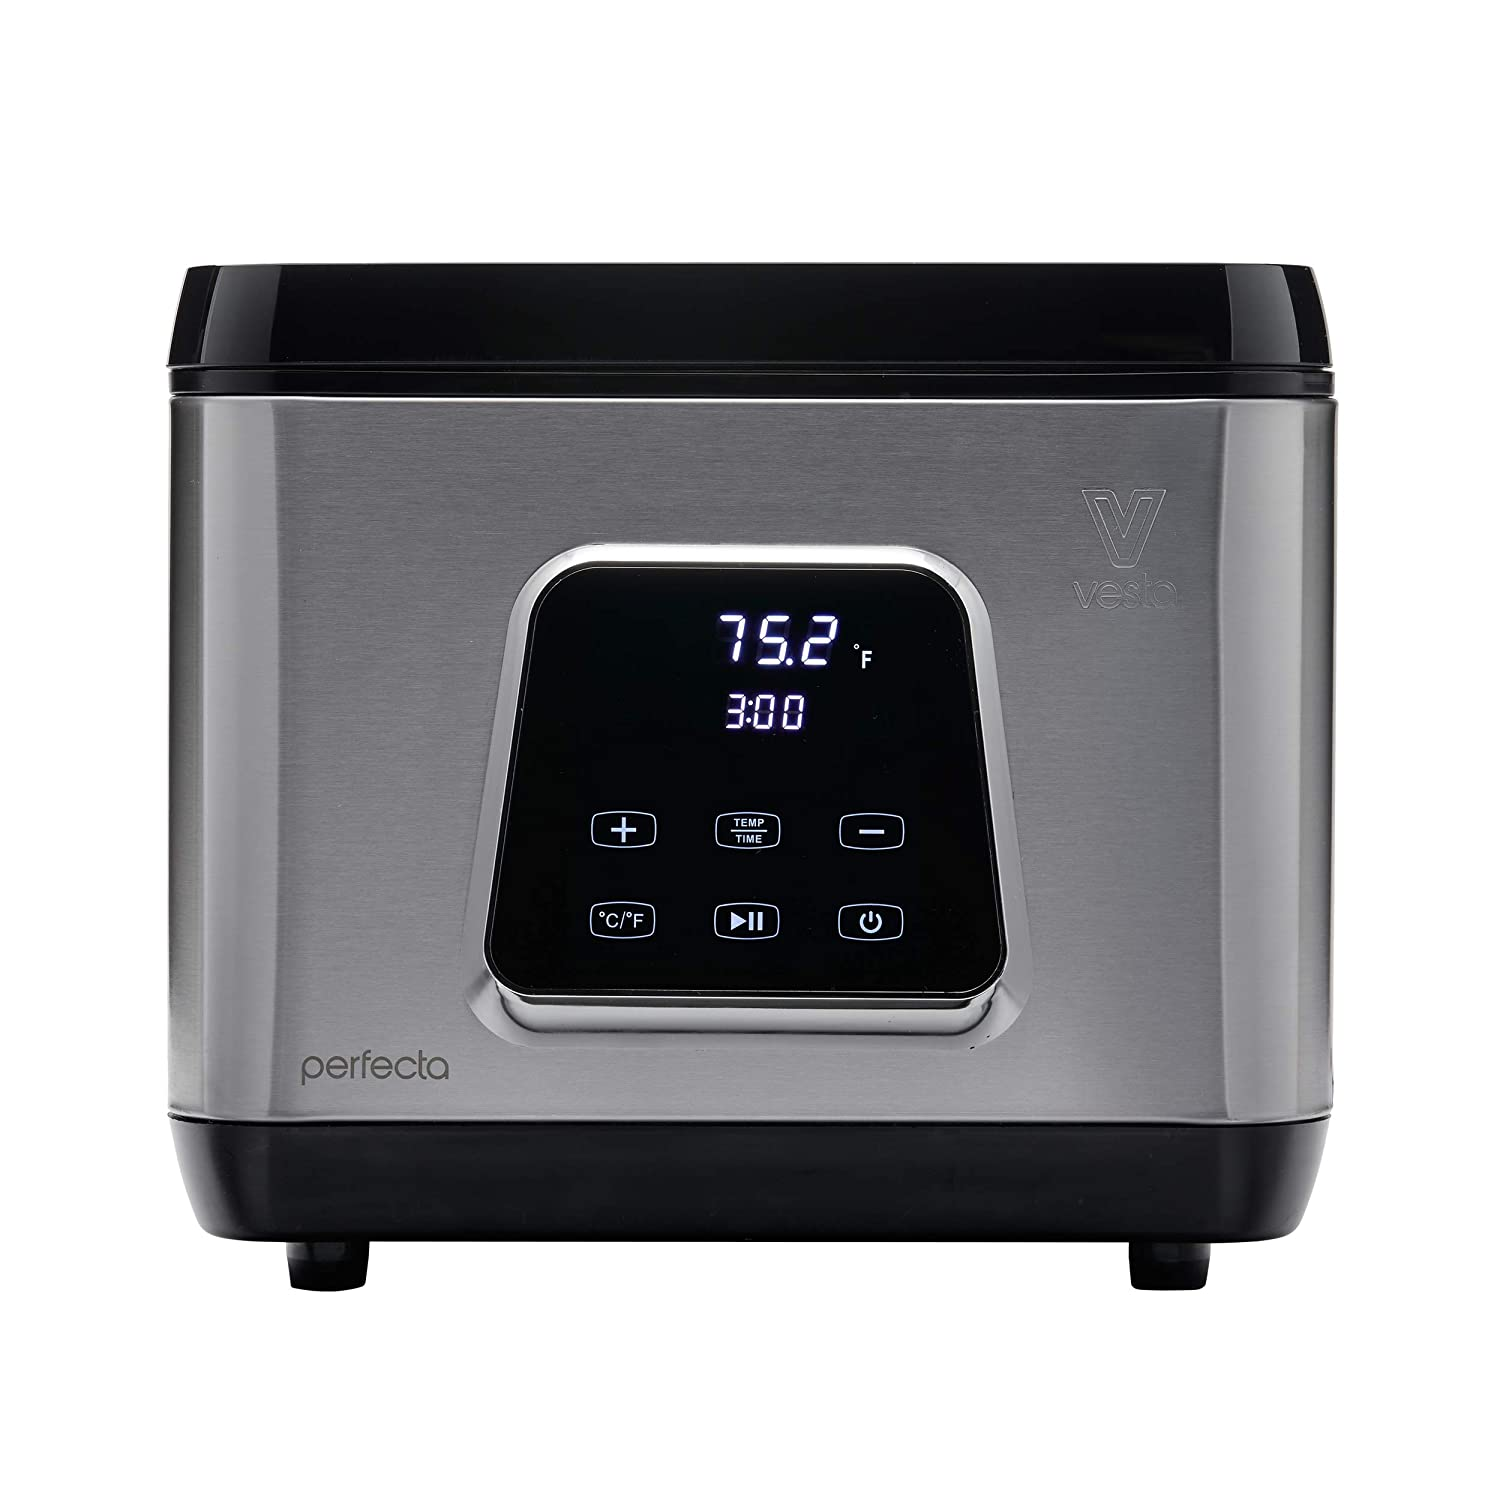 Sous Vide Water Oven by Vesta Precision - Perfecta | Powerful Pump Design | Accurate, Stable Temperature Control | Wi-Fi App Control | Touch Panel | Water Level Protection System | 650 Watts